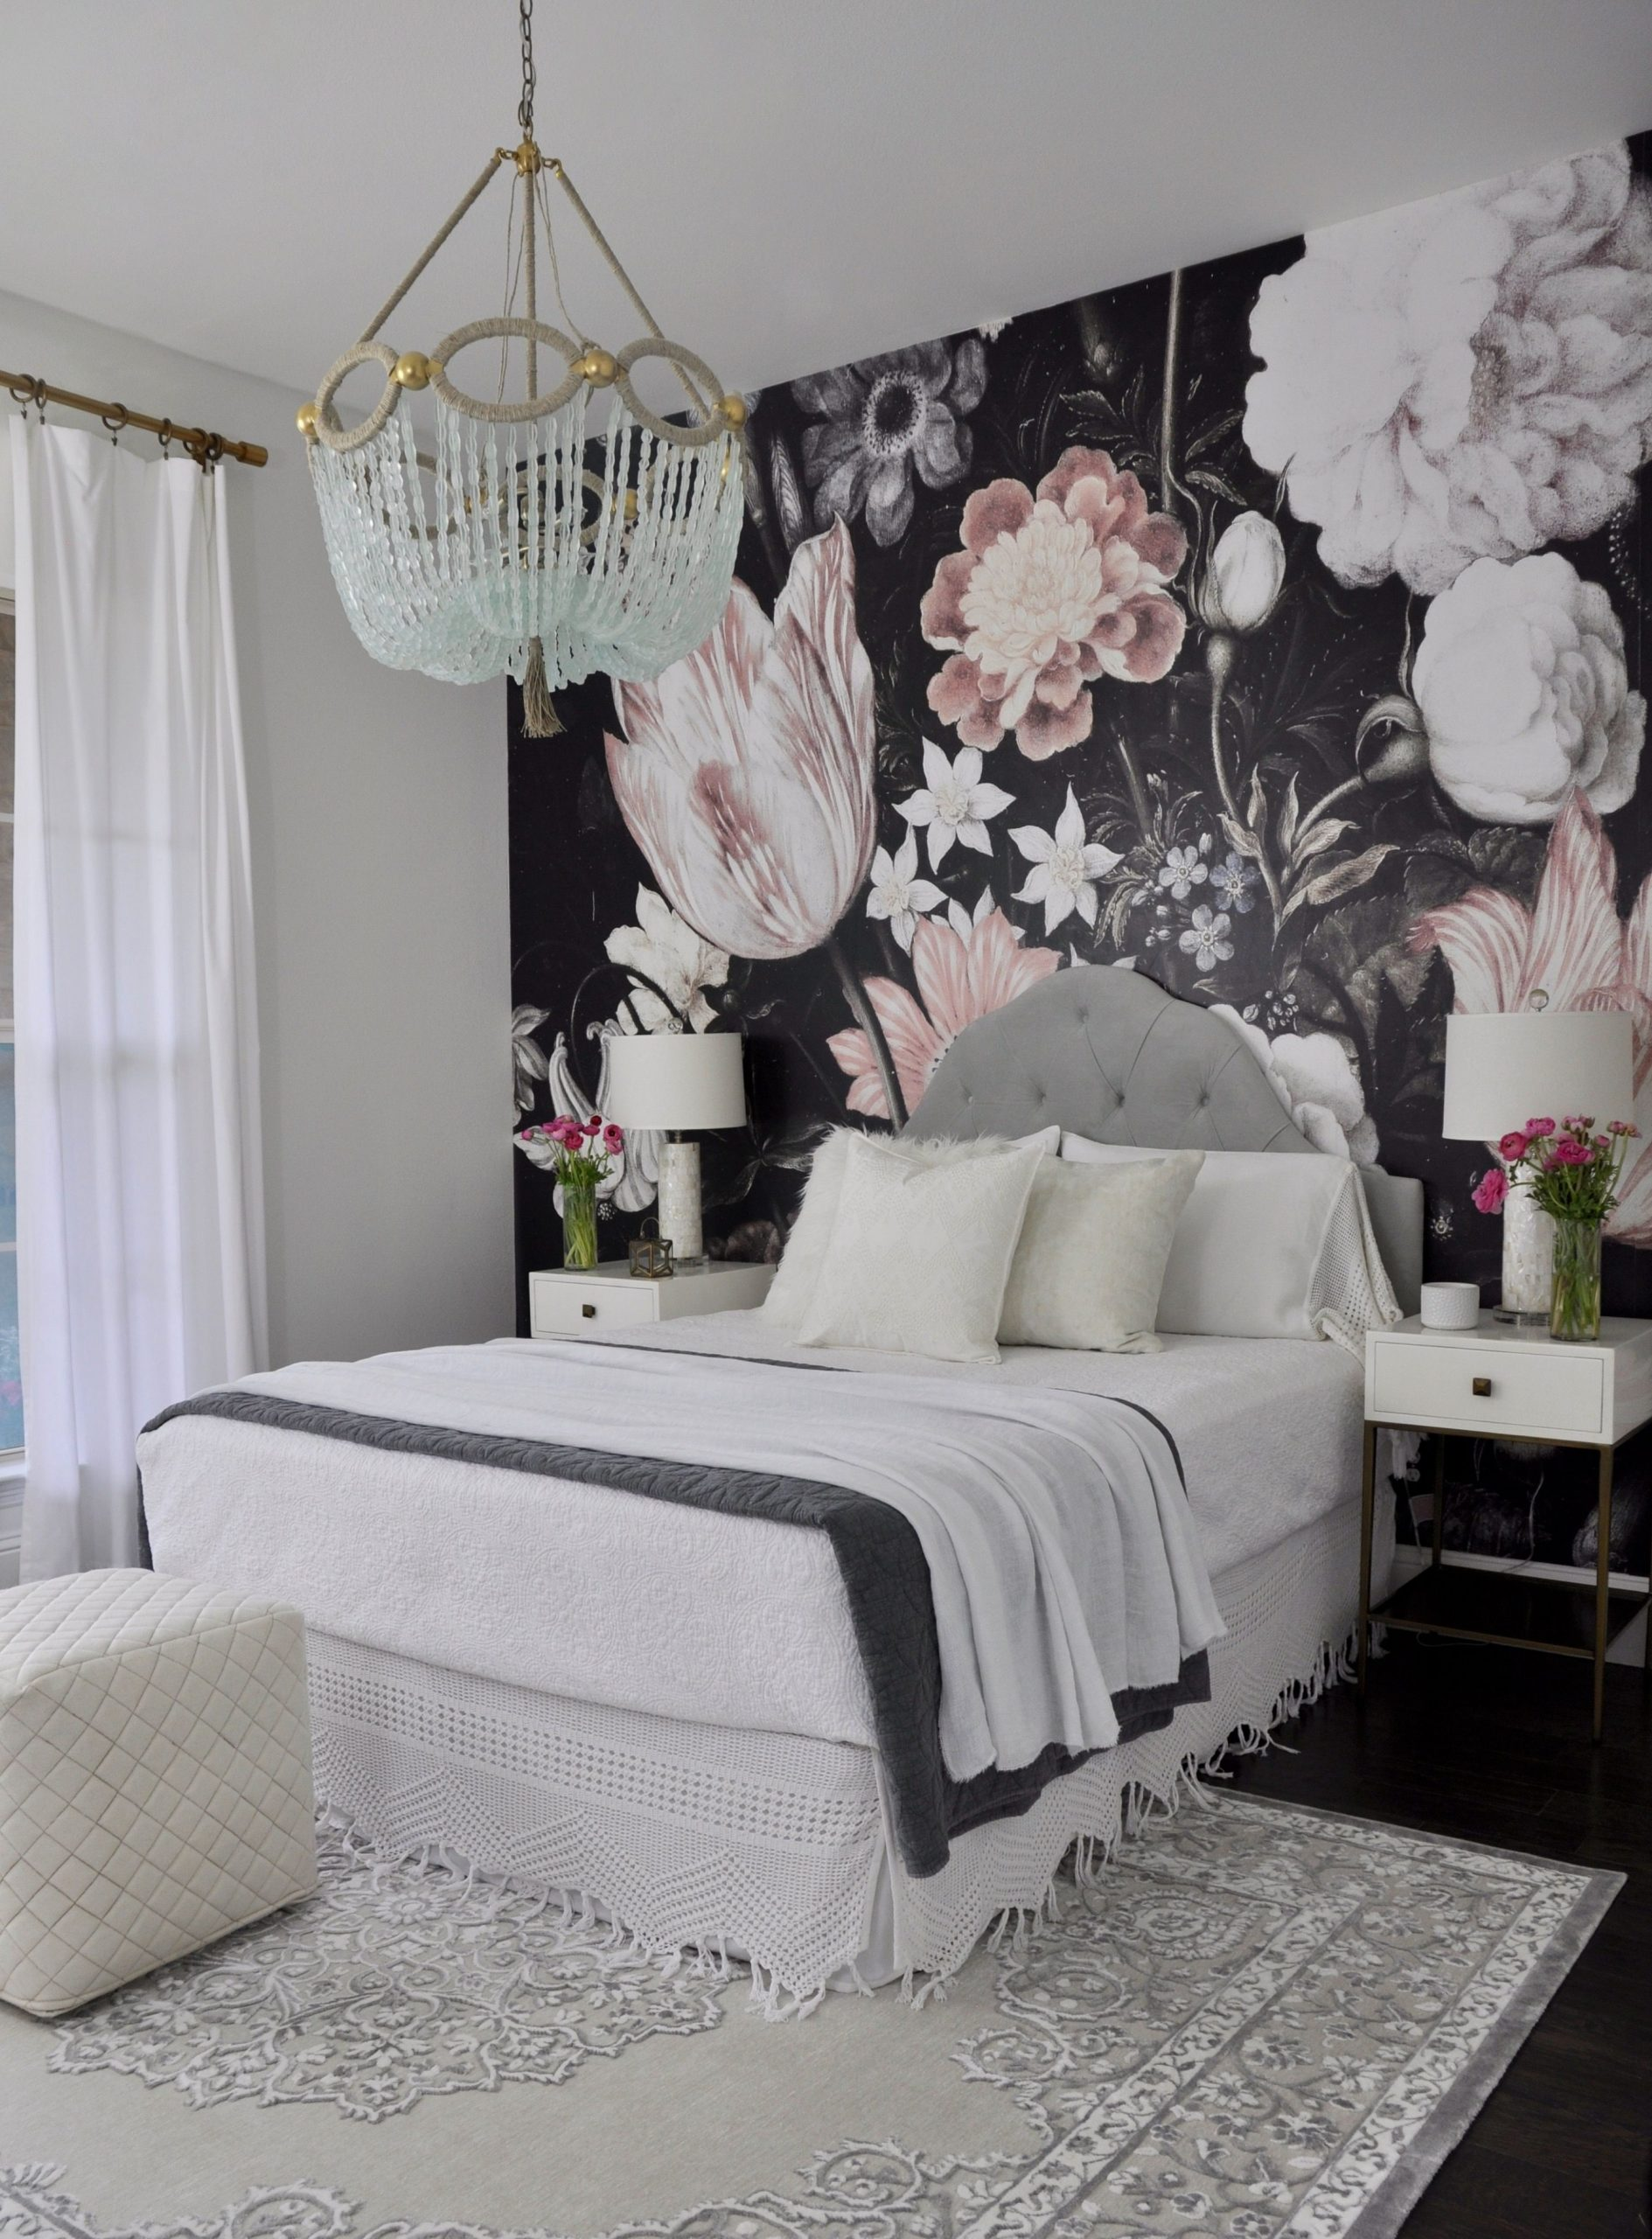 One Room Challenge - The Reveal - Decor Gold Designs  Remodel  - Bedroom Ideas Wallpaper